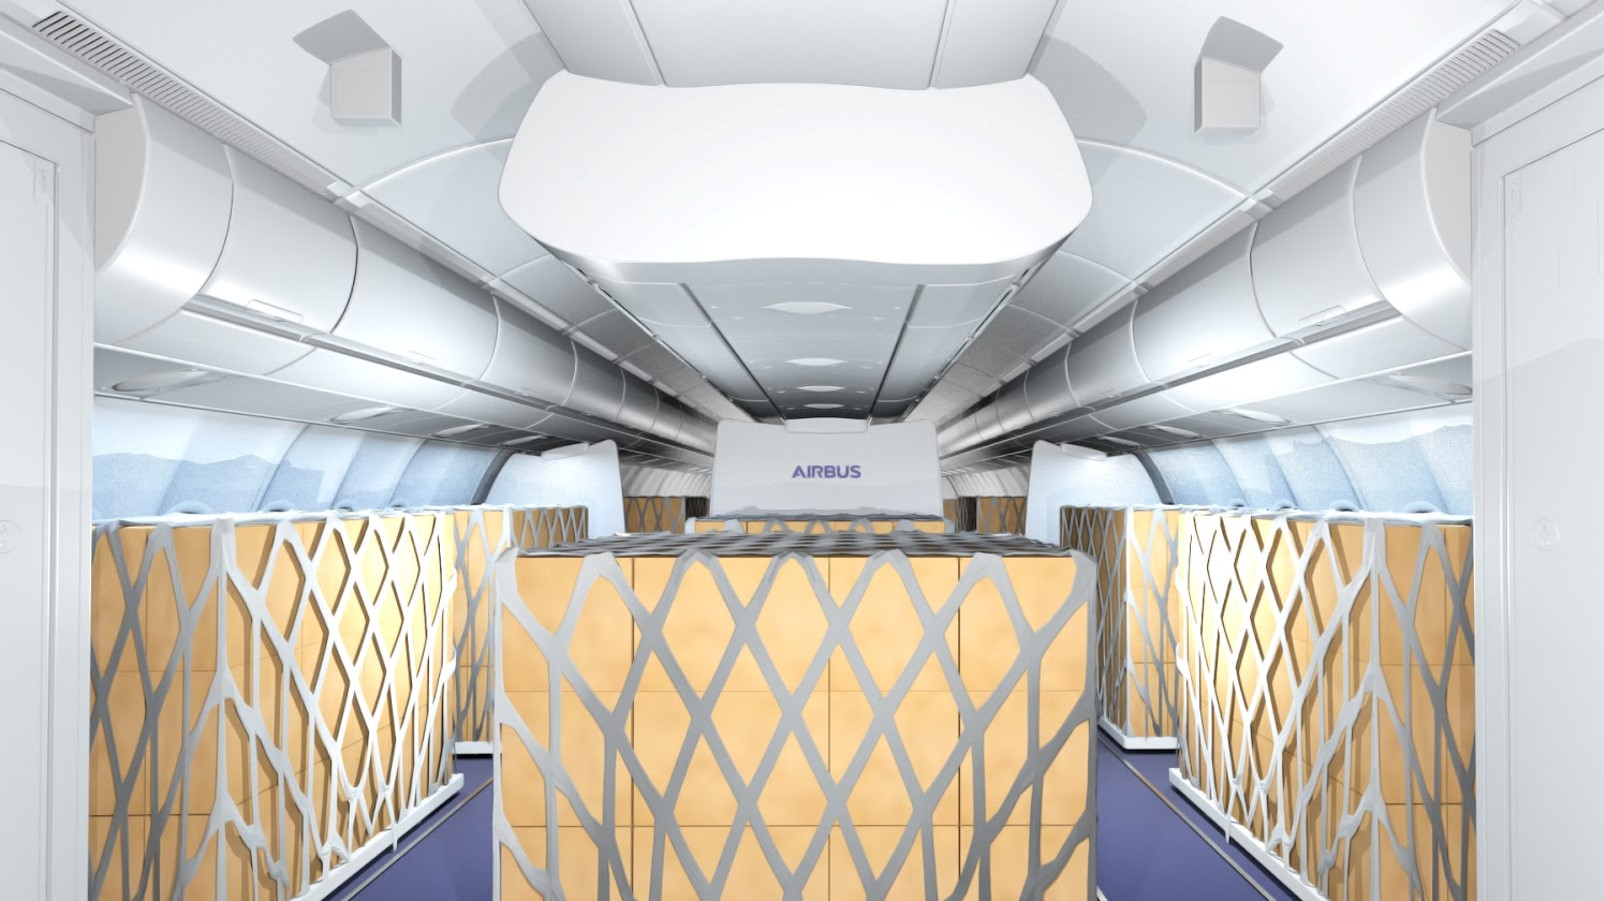 Transitional cargo transport in an A330 cabin